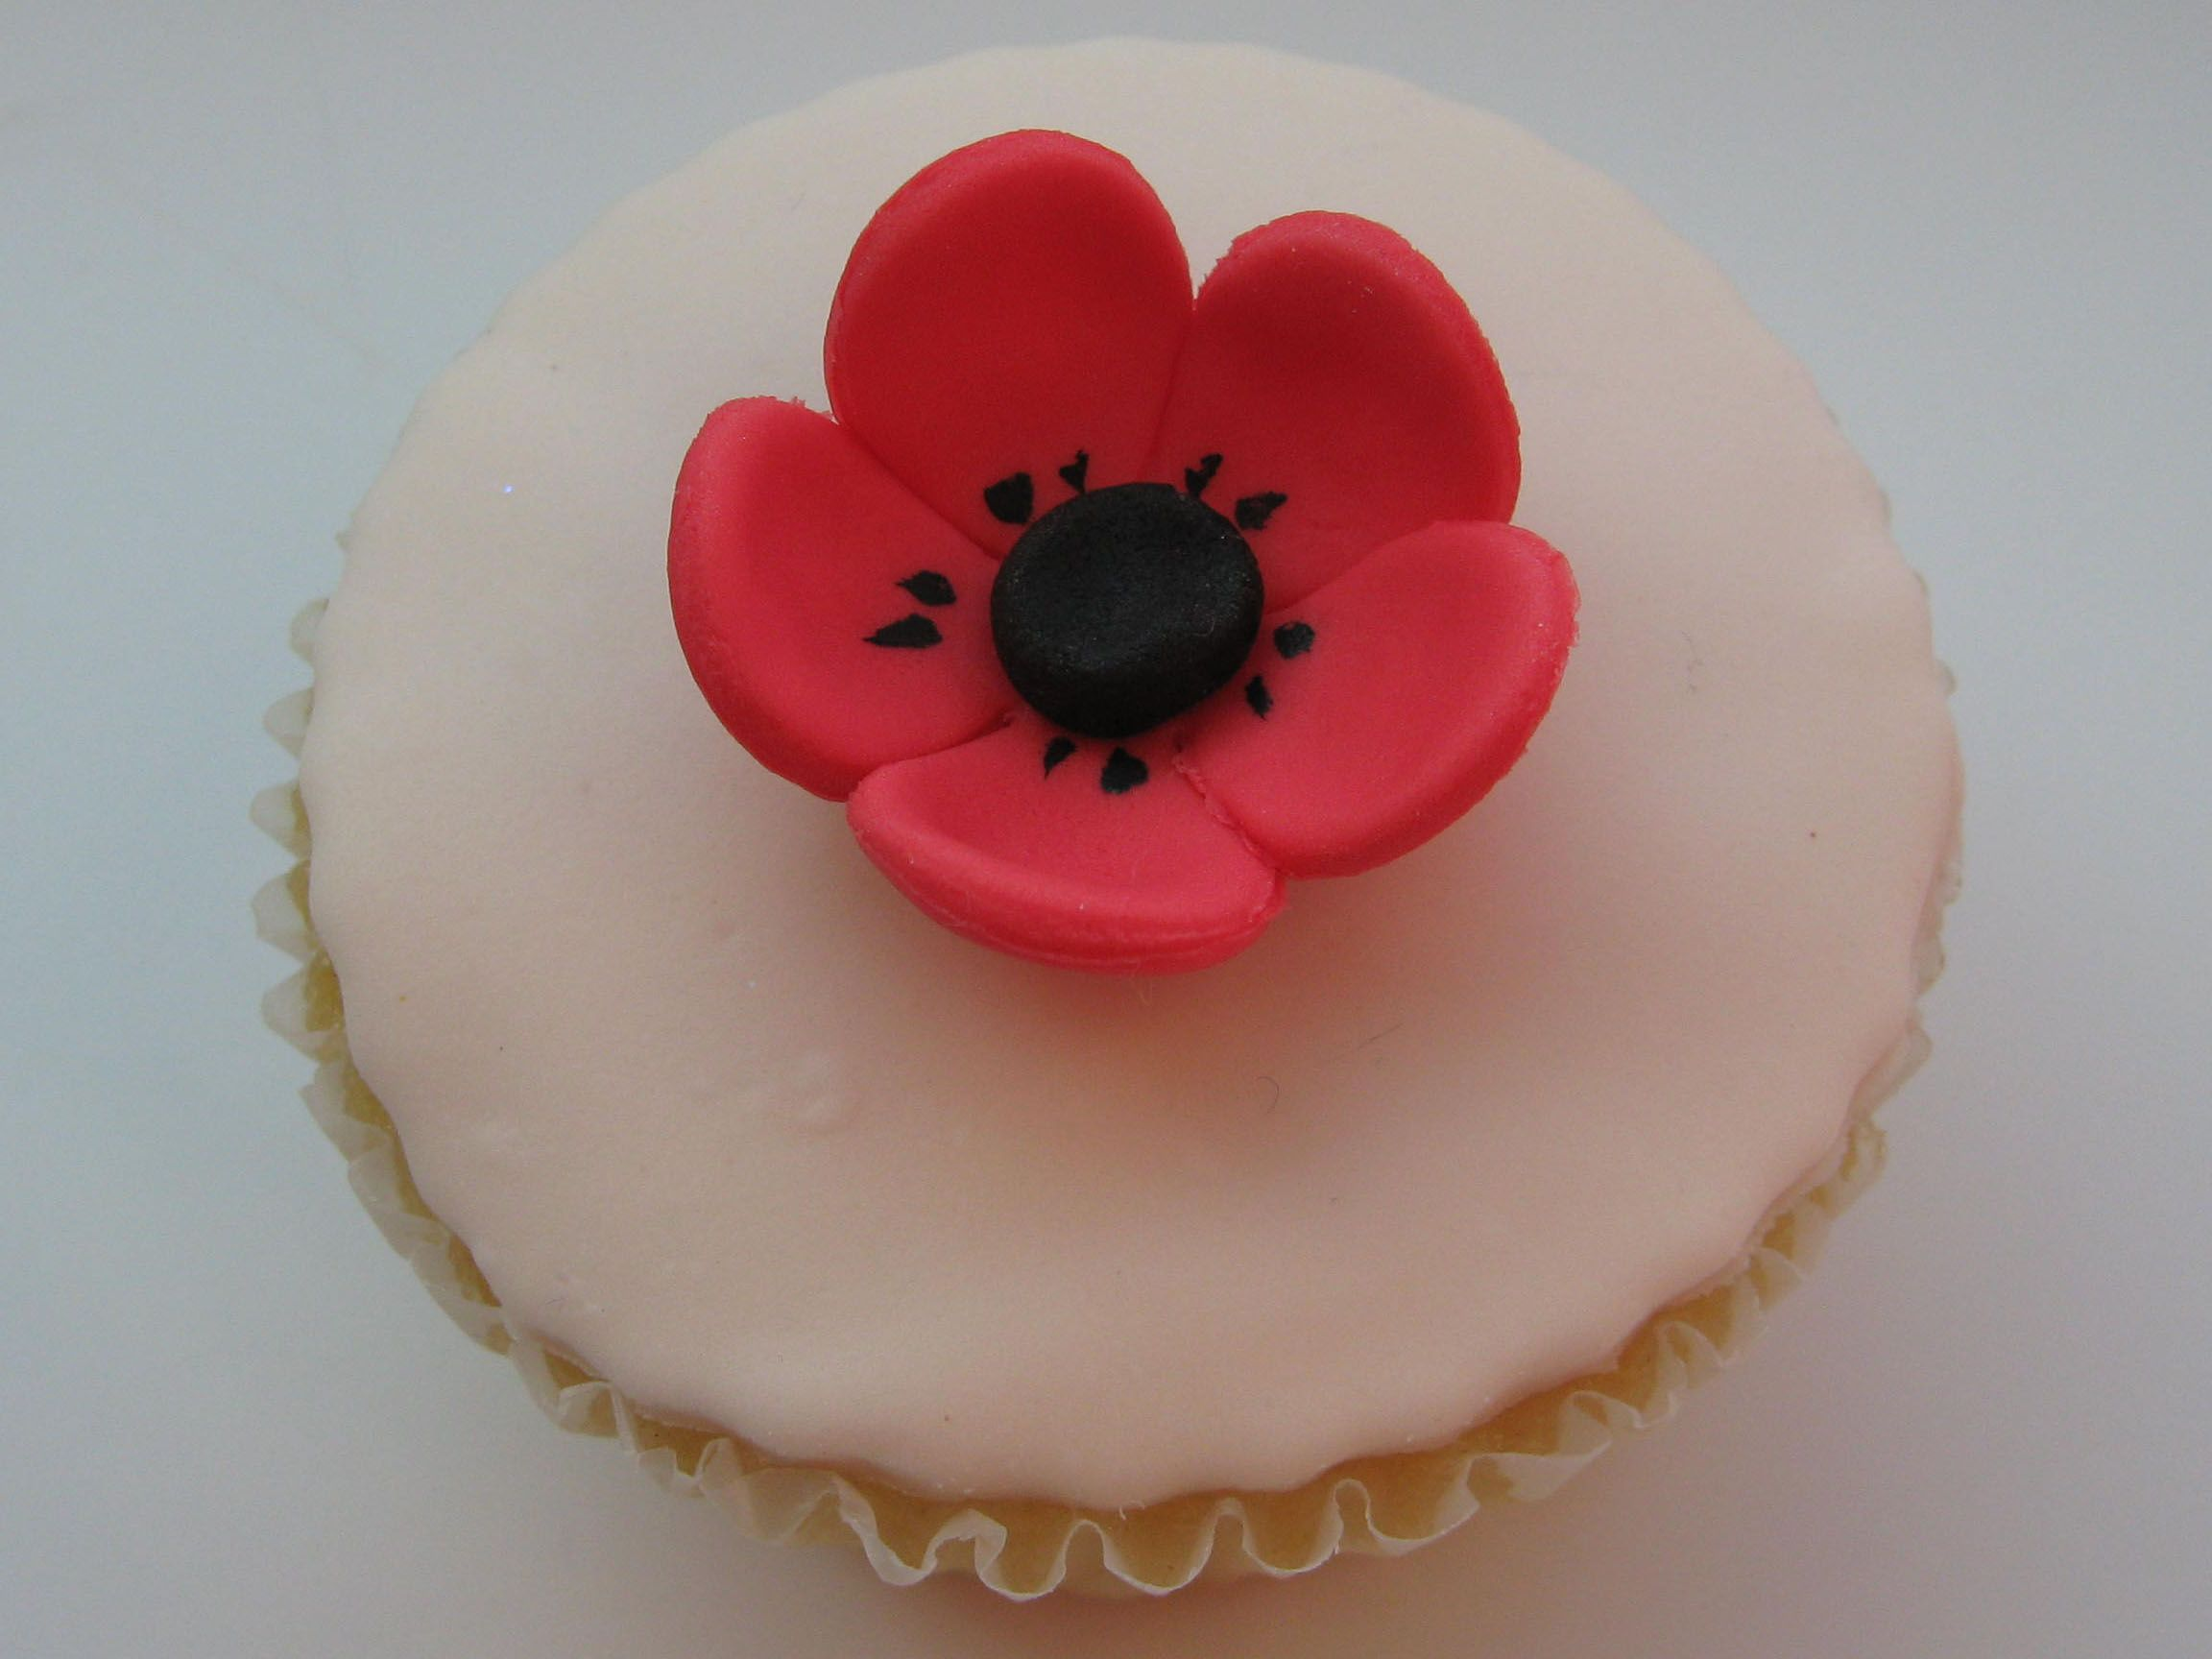 Cake Decoration Icing Sugar : 12 Sugar Icing Red Poppy Flower Cake Cupcake Decorations ...